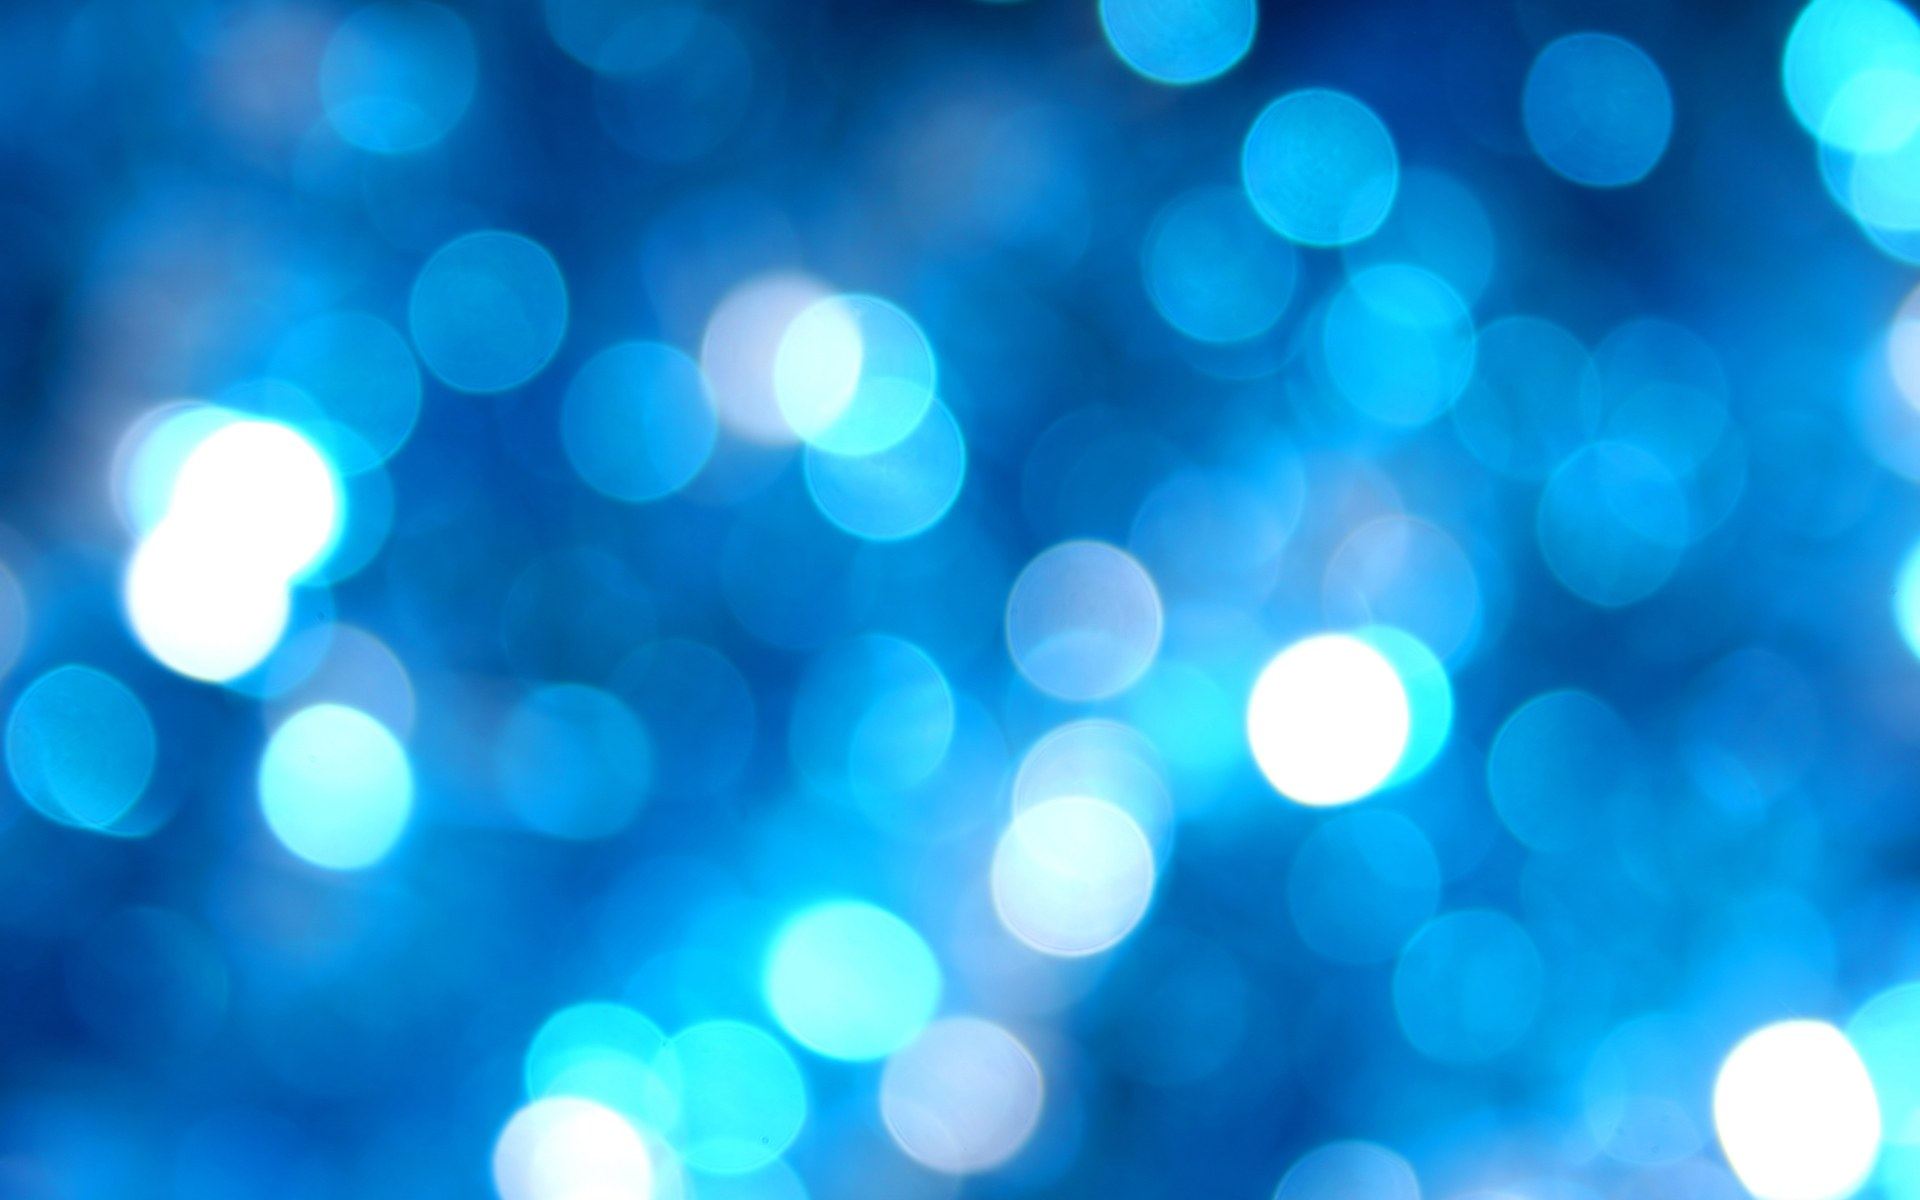 blue-abstract-background-3439-hd-wallpapers